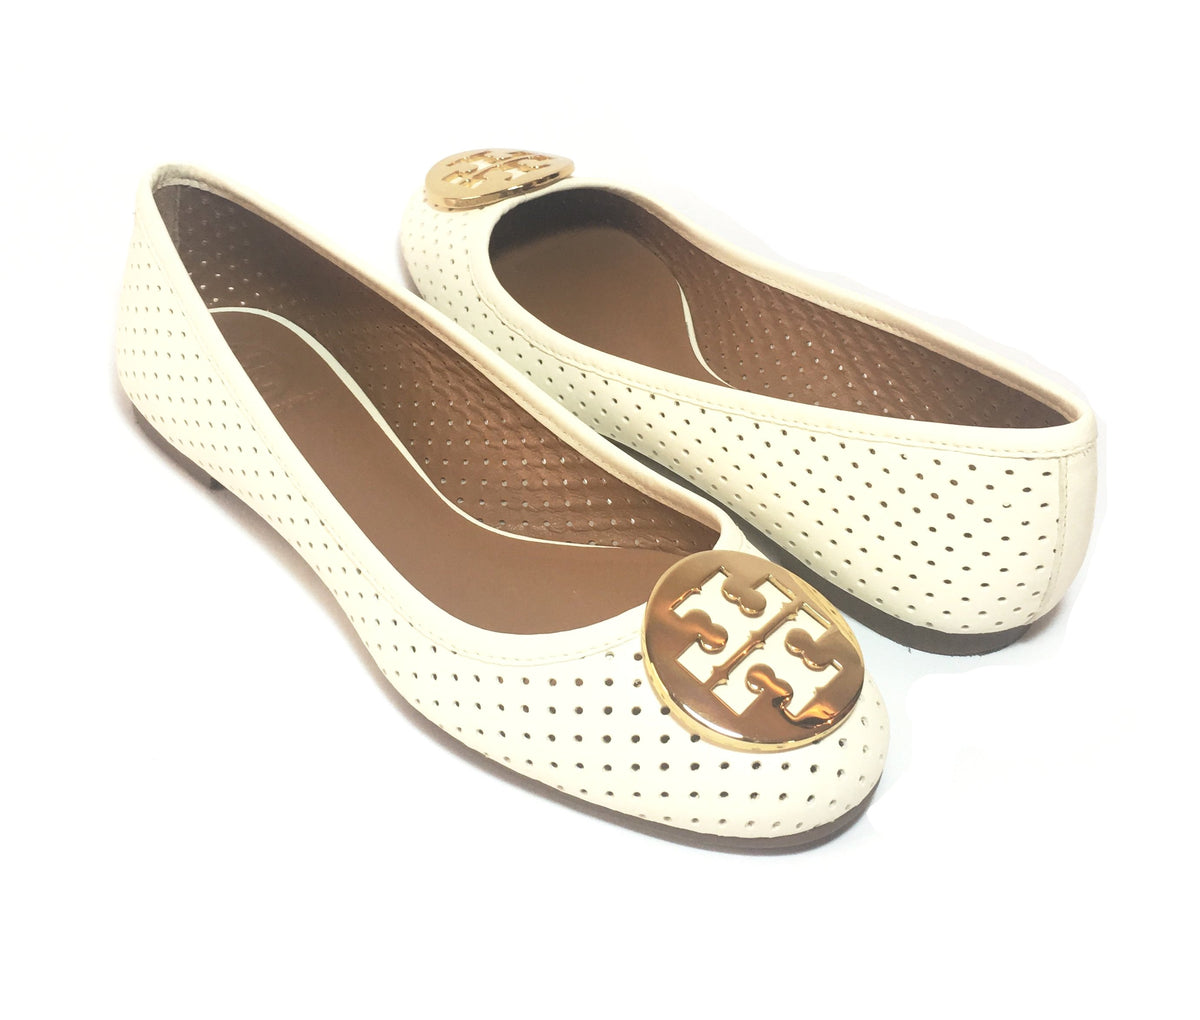 60a373ddc4b Tory Burch Ivory  Perforated Reva  Ballet Flat